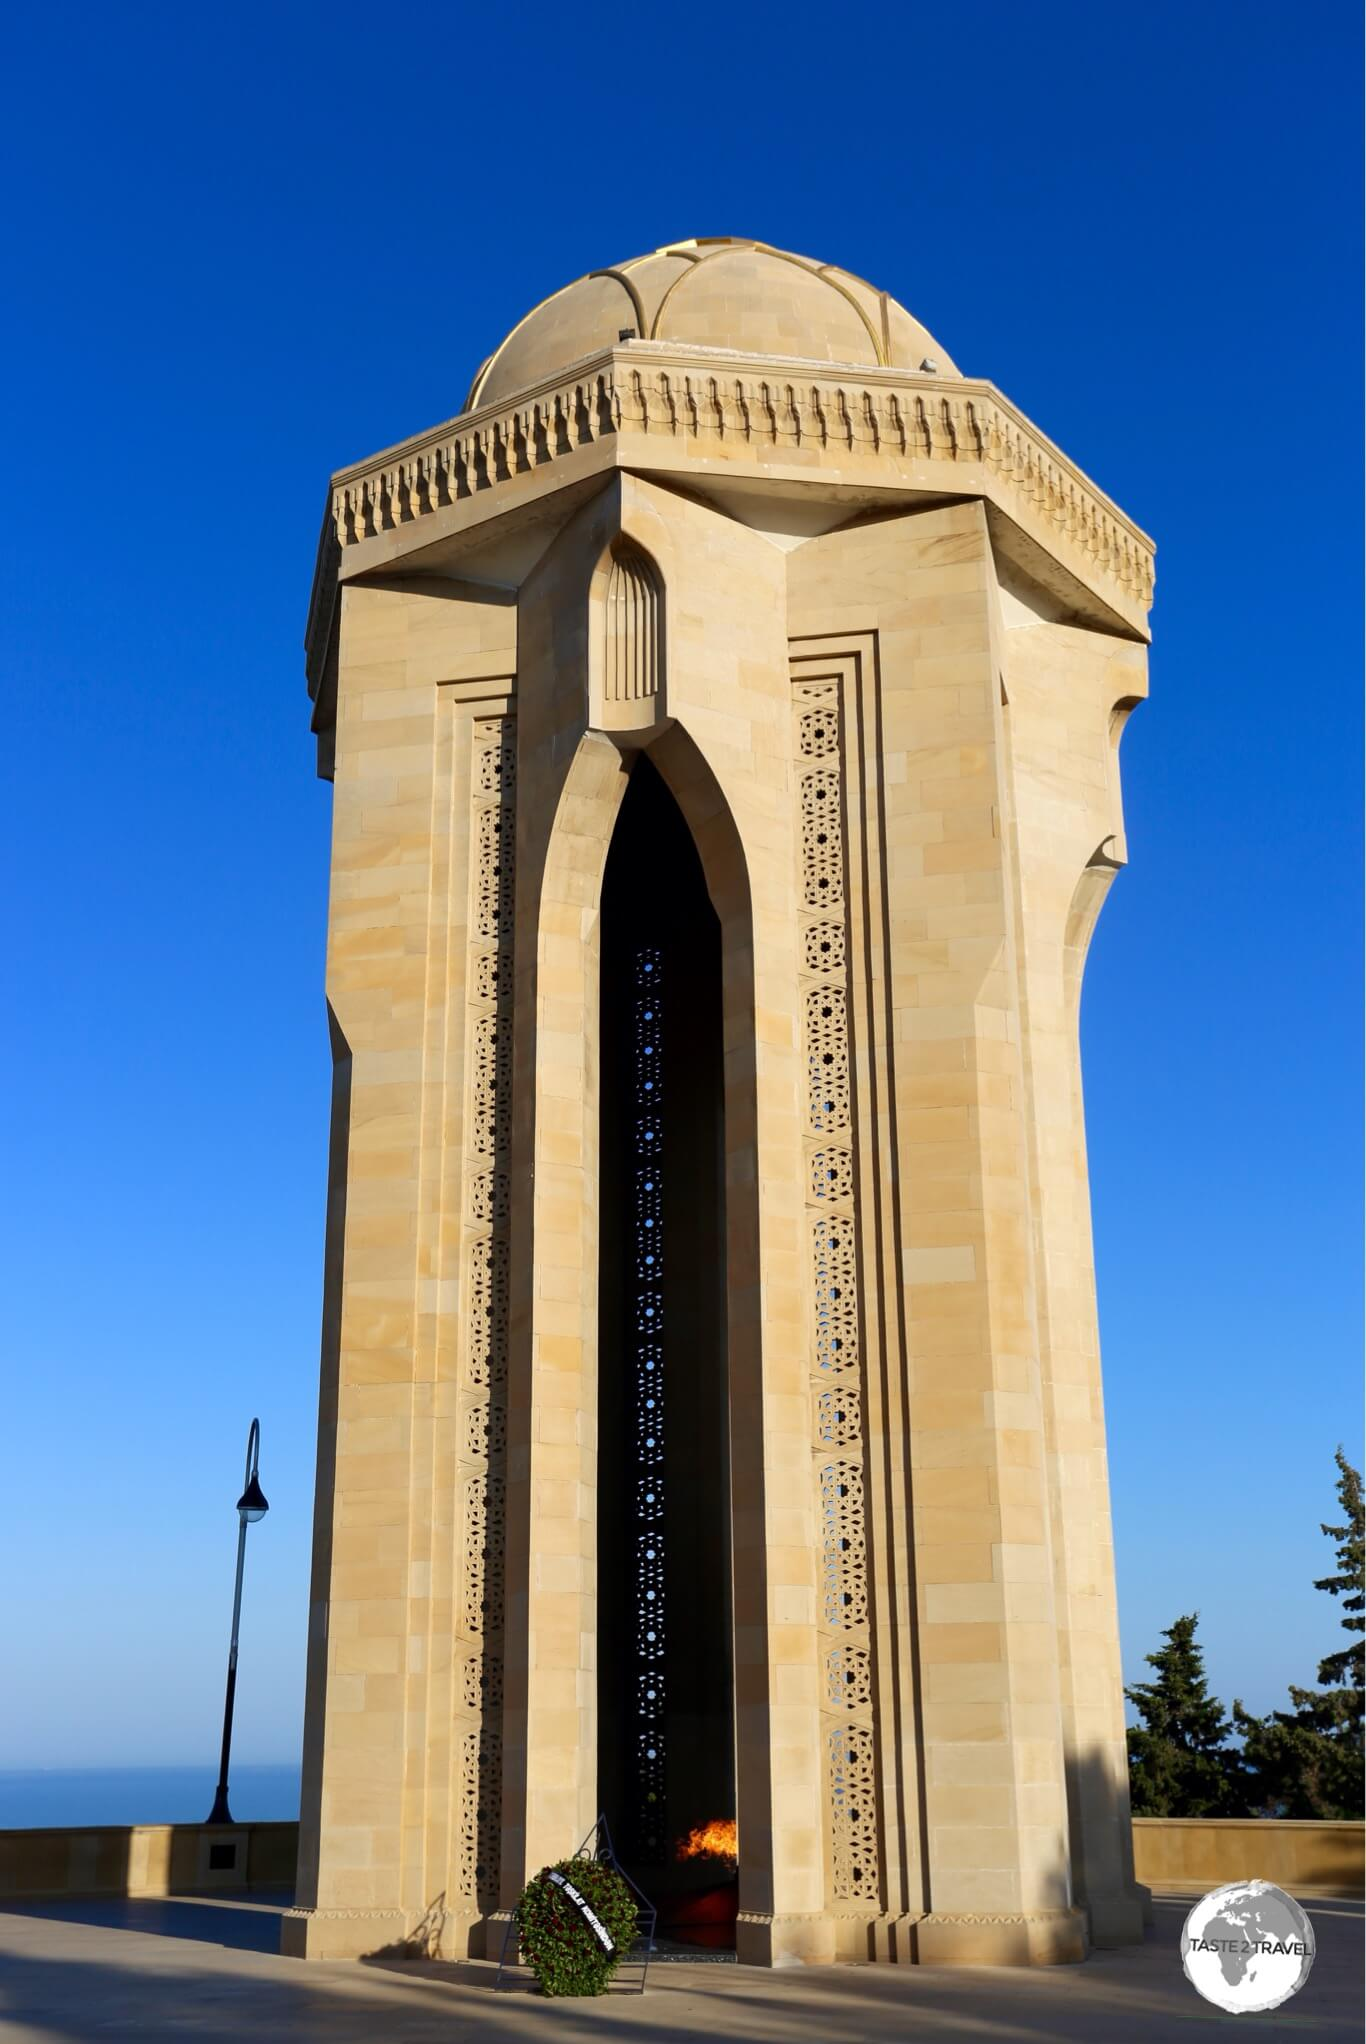 The Eternal Flame Memorial at Highland park which overlooks Baku.